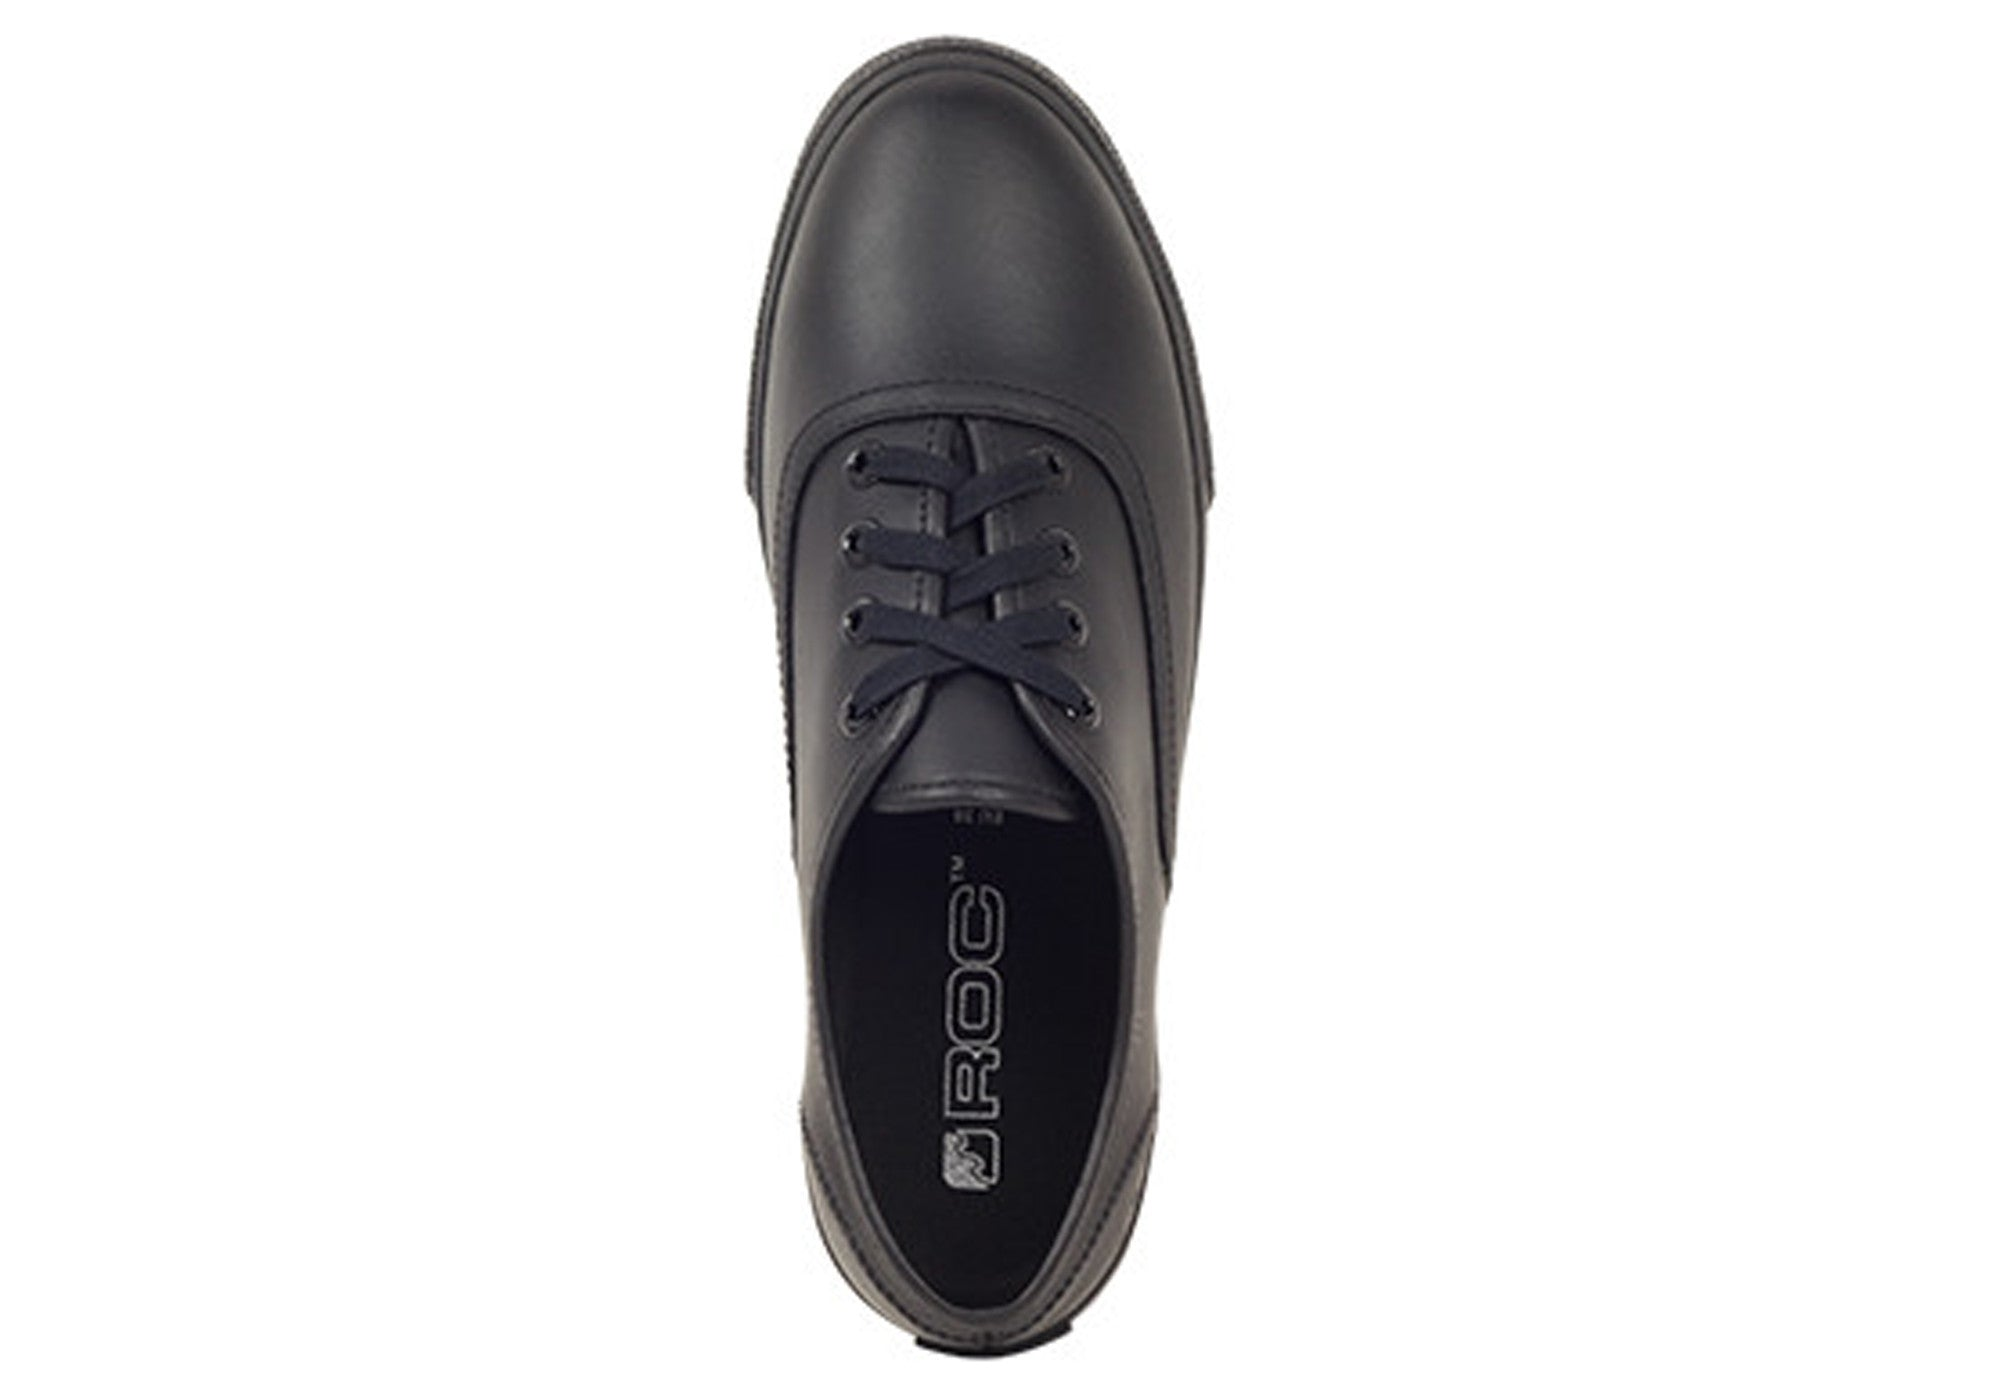 Roc Demi Senior Leather School Shoes